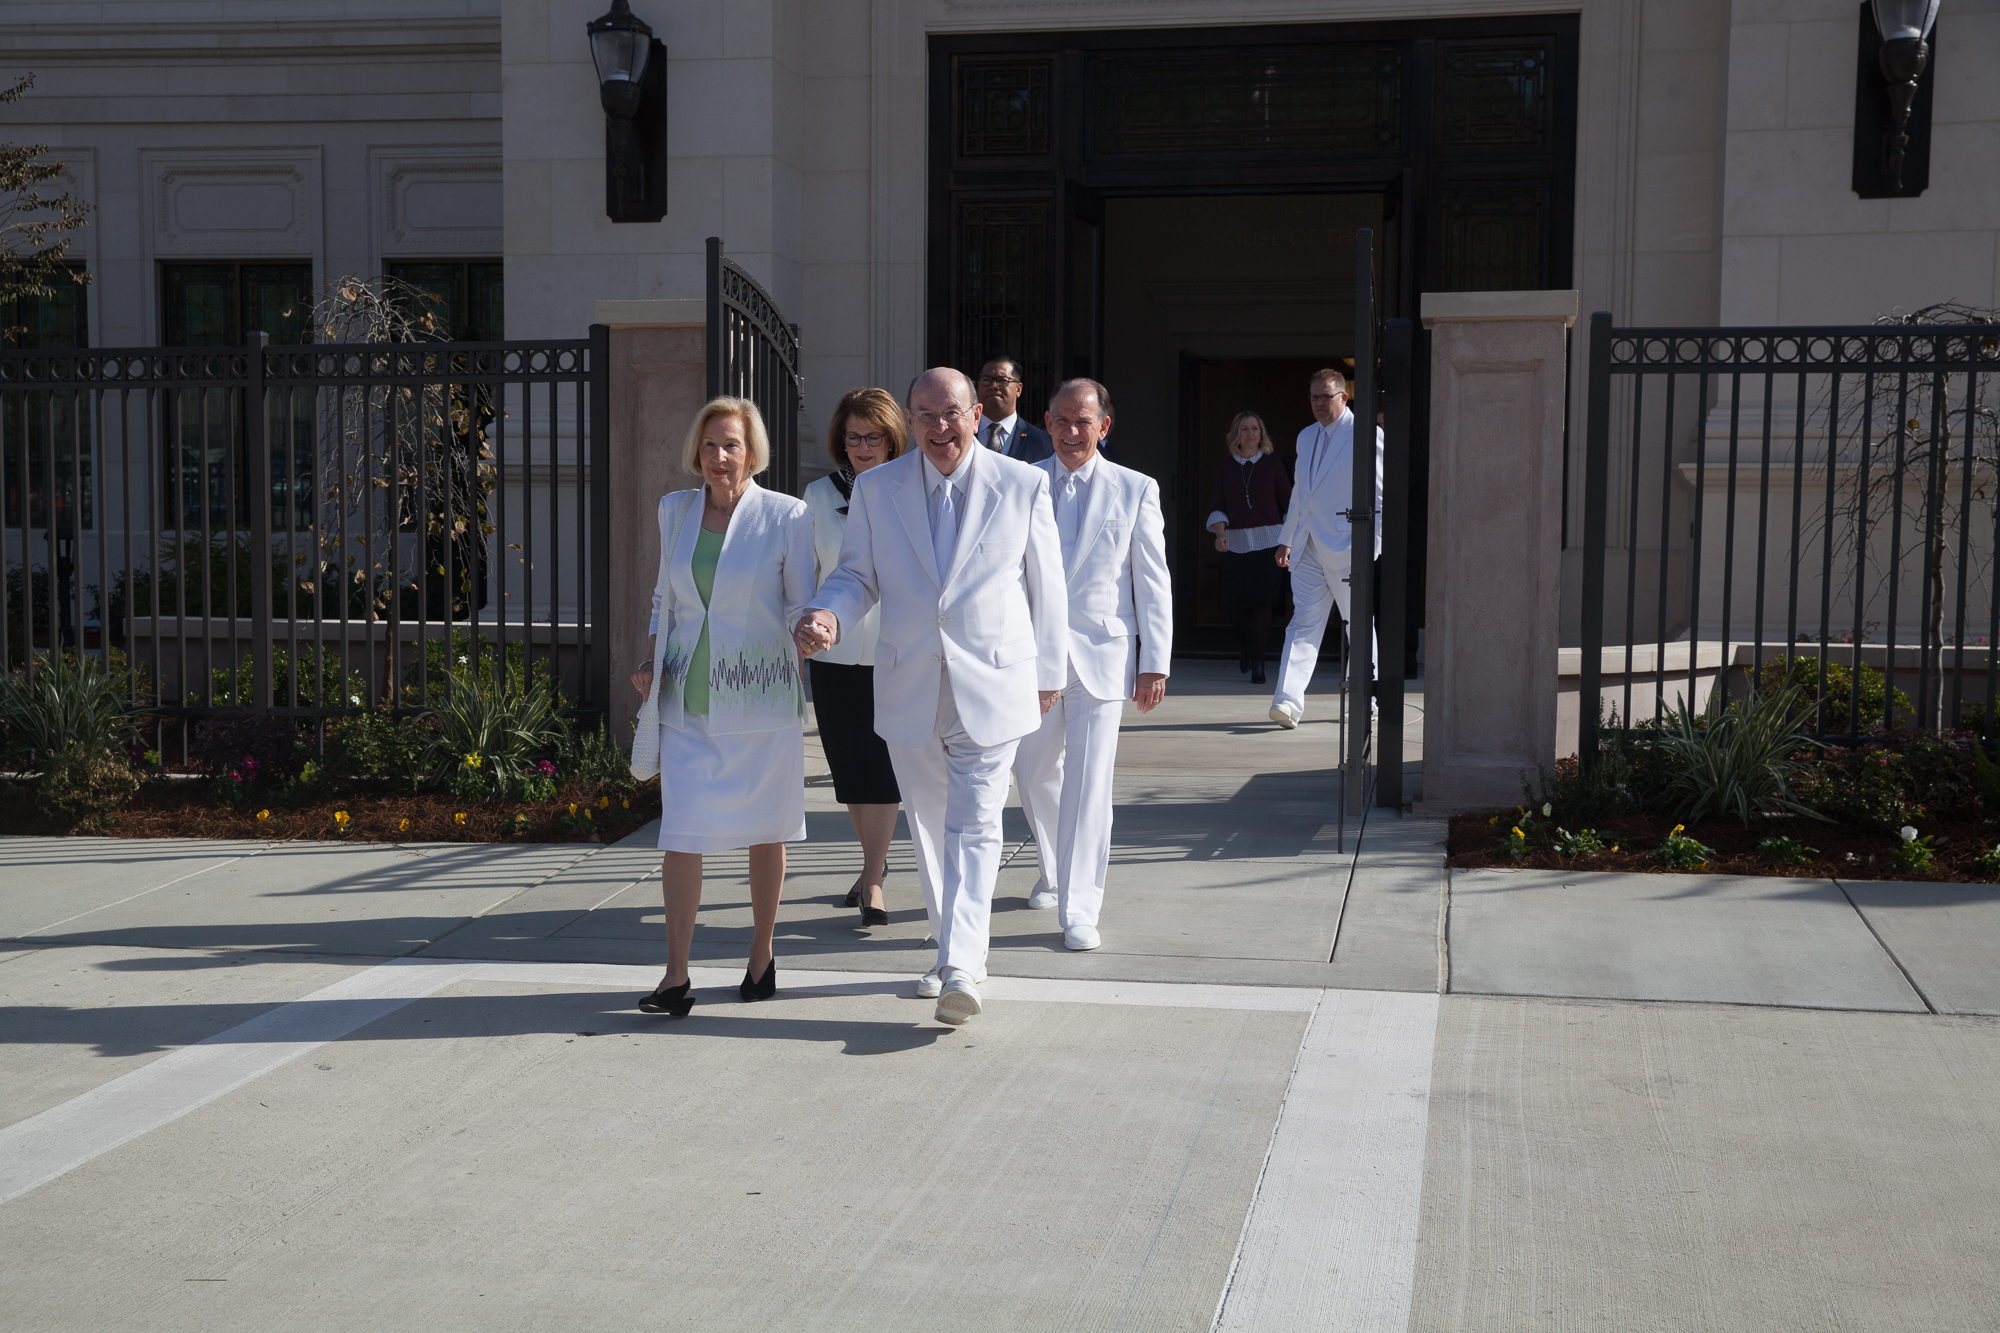 Elder Quentin L. Cook of the Quorum of the Twelve Apostles, and his wife, Sister Mary Cook, exit the Baton Rouge Louisiana Temple prior to its rededication on Sunday, Nov. 17, 2019.